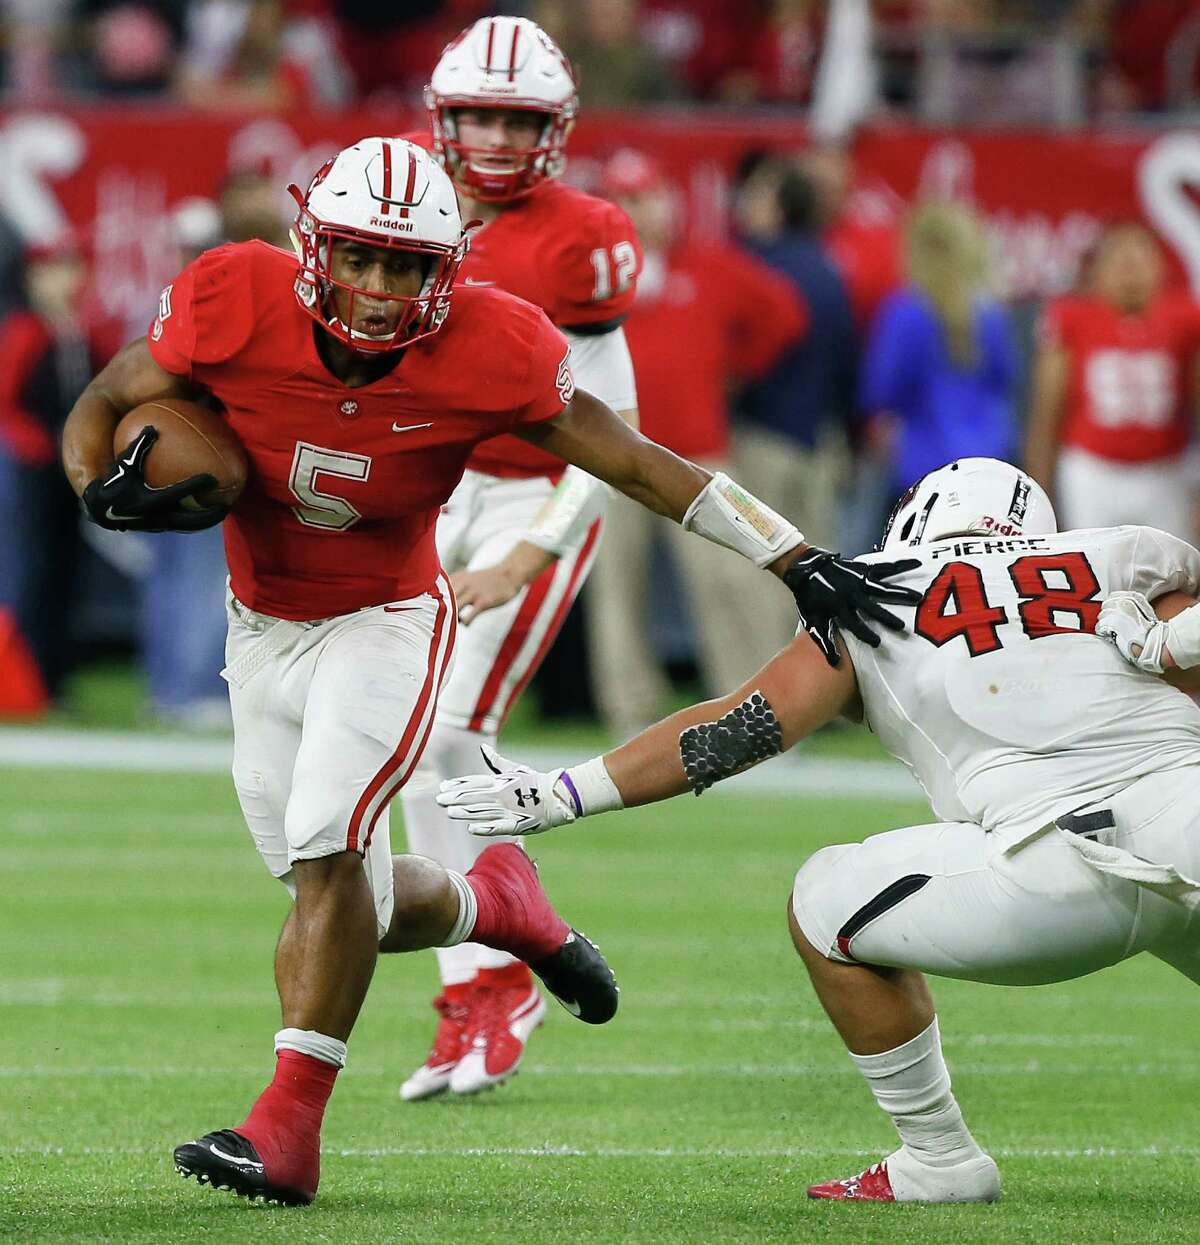 For months, it looked like Texas would be playing second fiddle to most of its in-state rivals on signing day, but Charlie Strong and his staff could pull off a major coup in the final hours, starting with Katy star running back Kyle Porter, who verbally committed to the Longhorns on Tuesday.